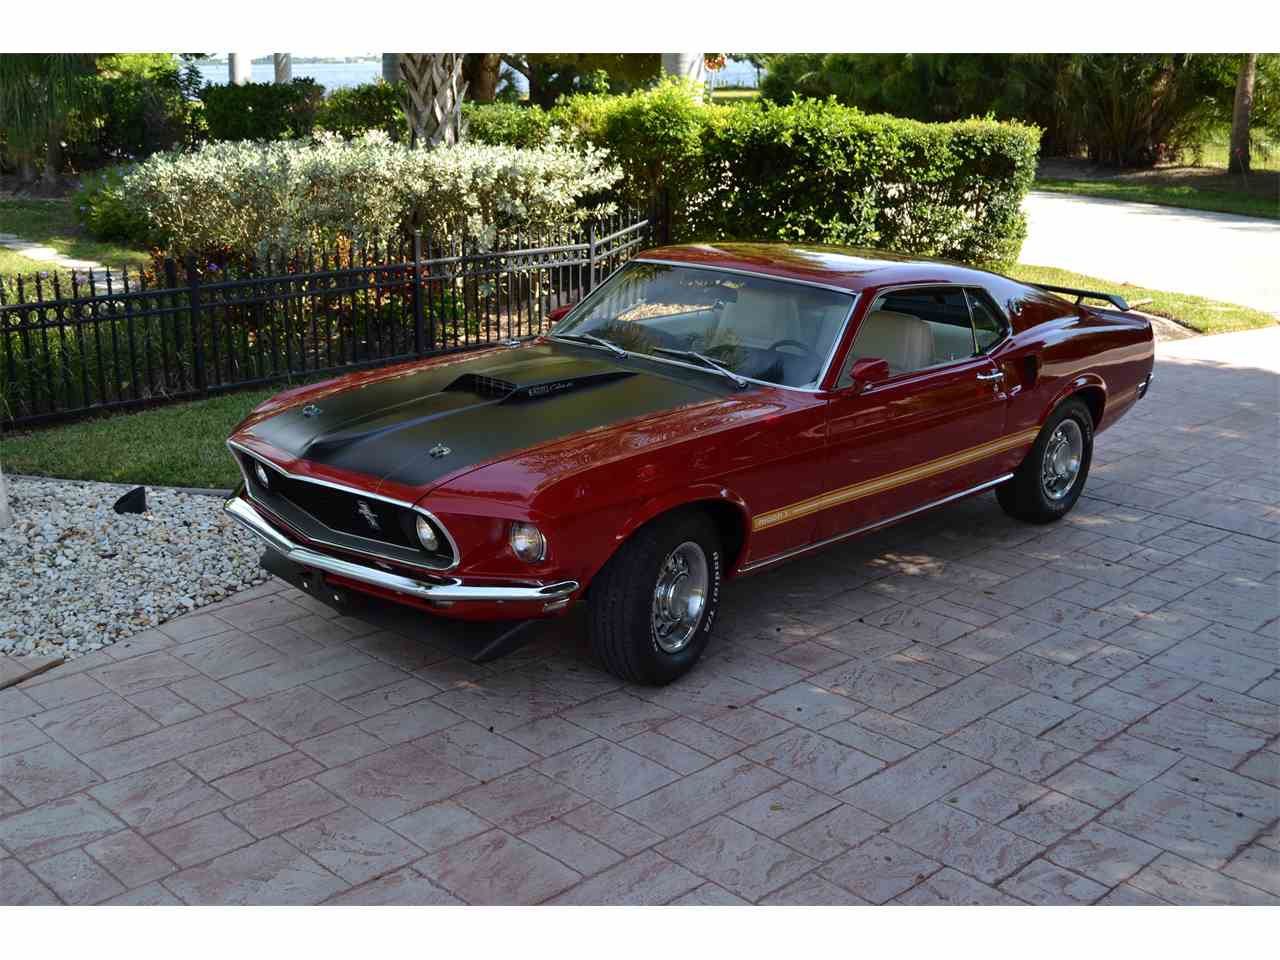 Large Picture of 1969 Mustang Mach 1 - $68,500.00 Offered by a Private Seller - FQAH